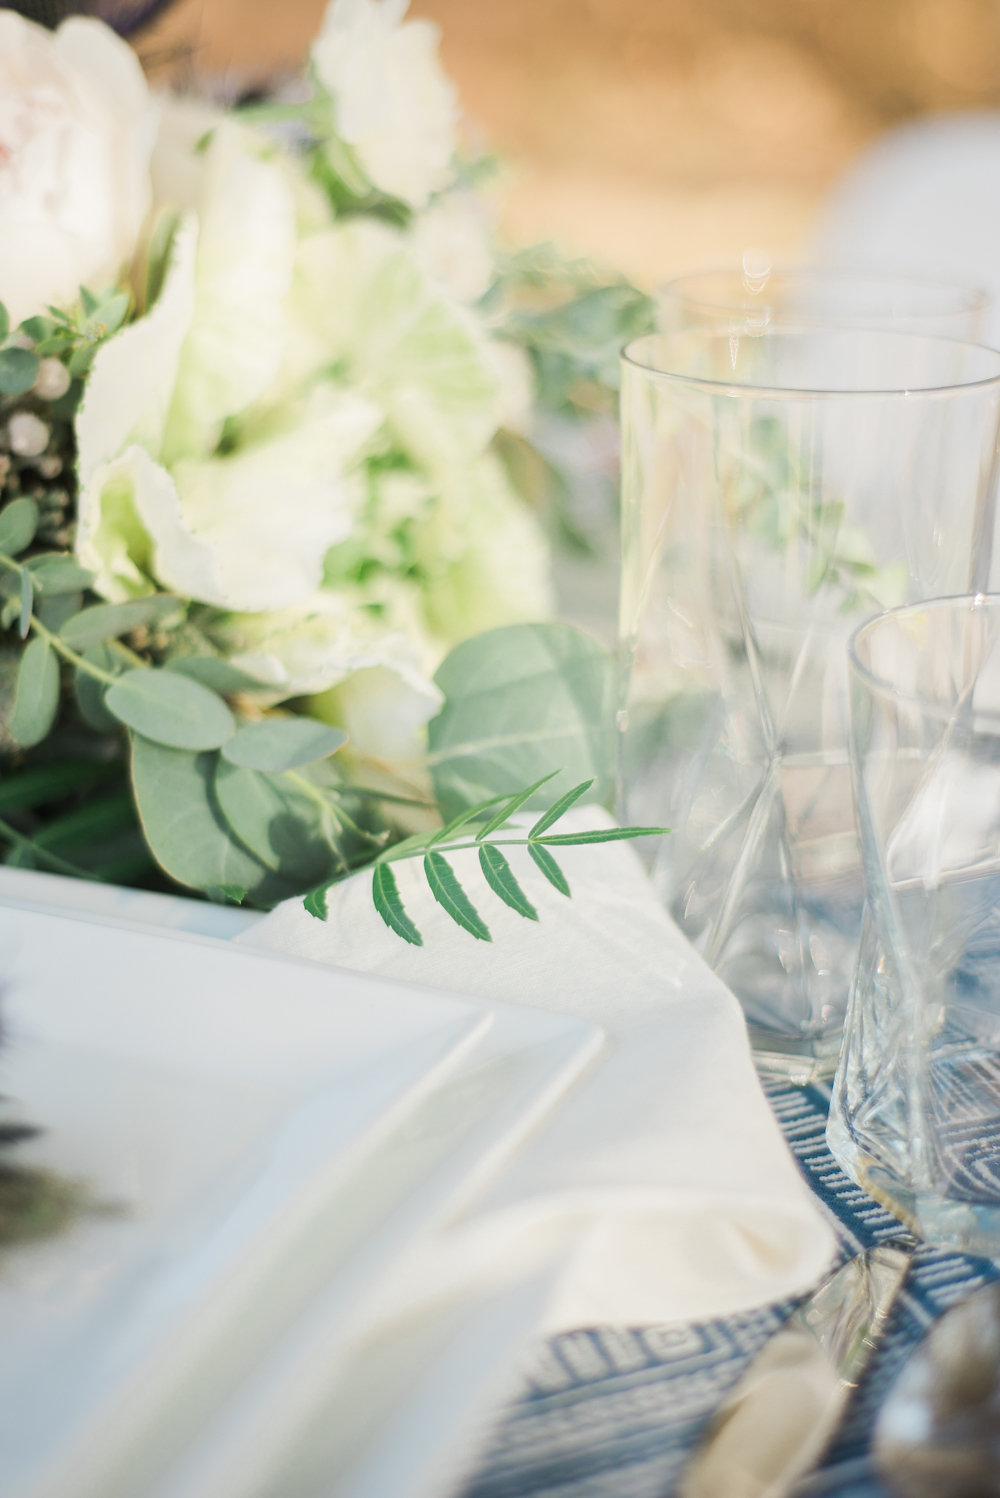 tablescape details - photo by Anya Kernes Photography http://ruffledblog.com/organic-wedding-inspiration-with-shades-of-blue